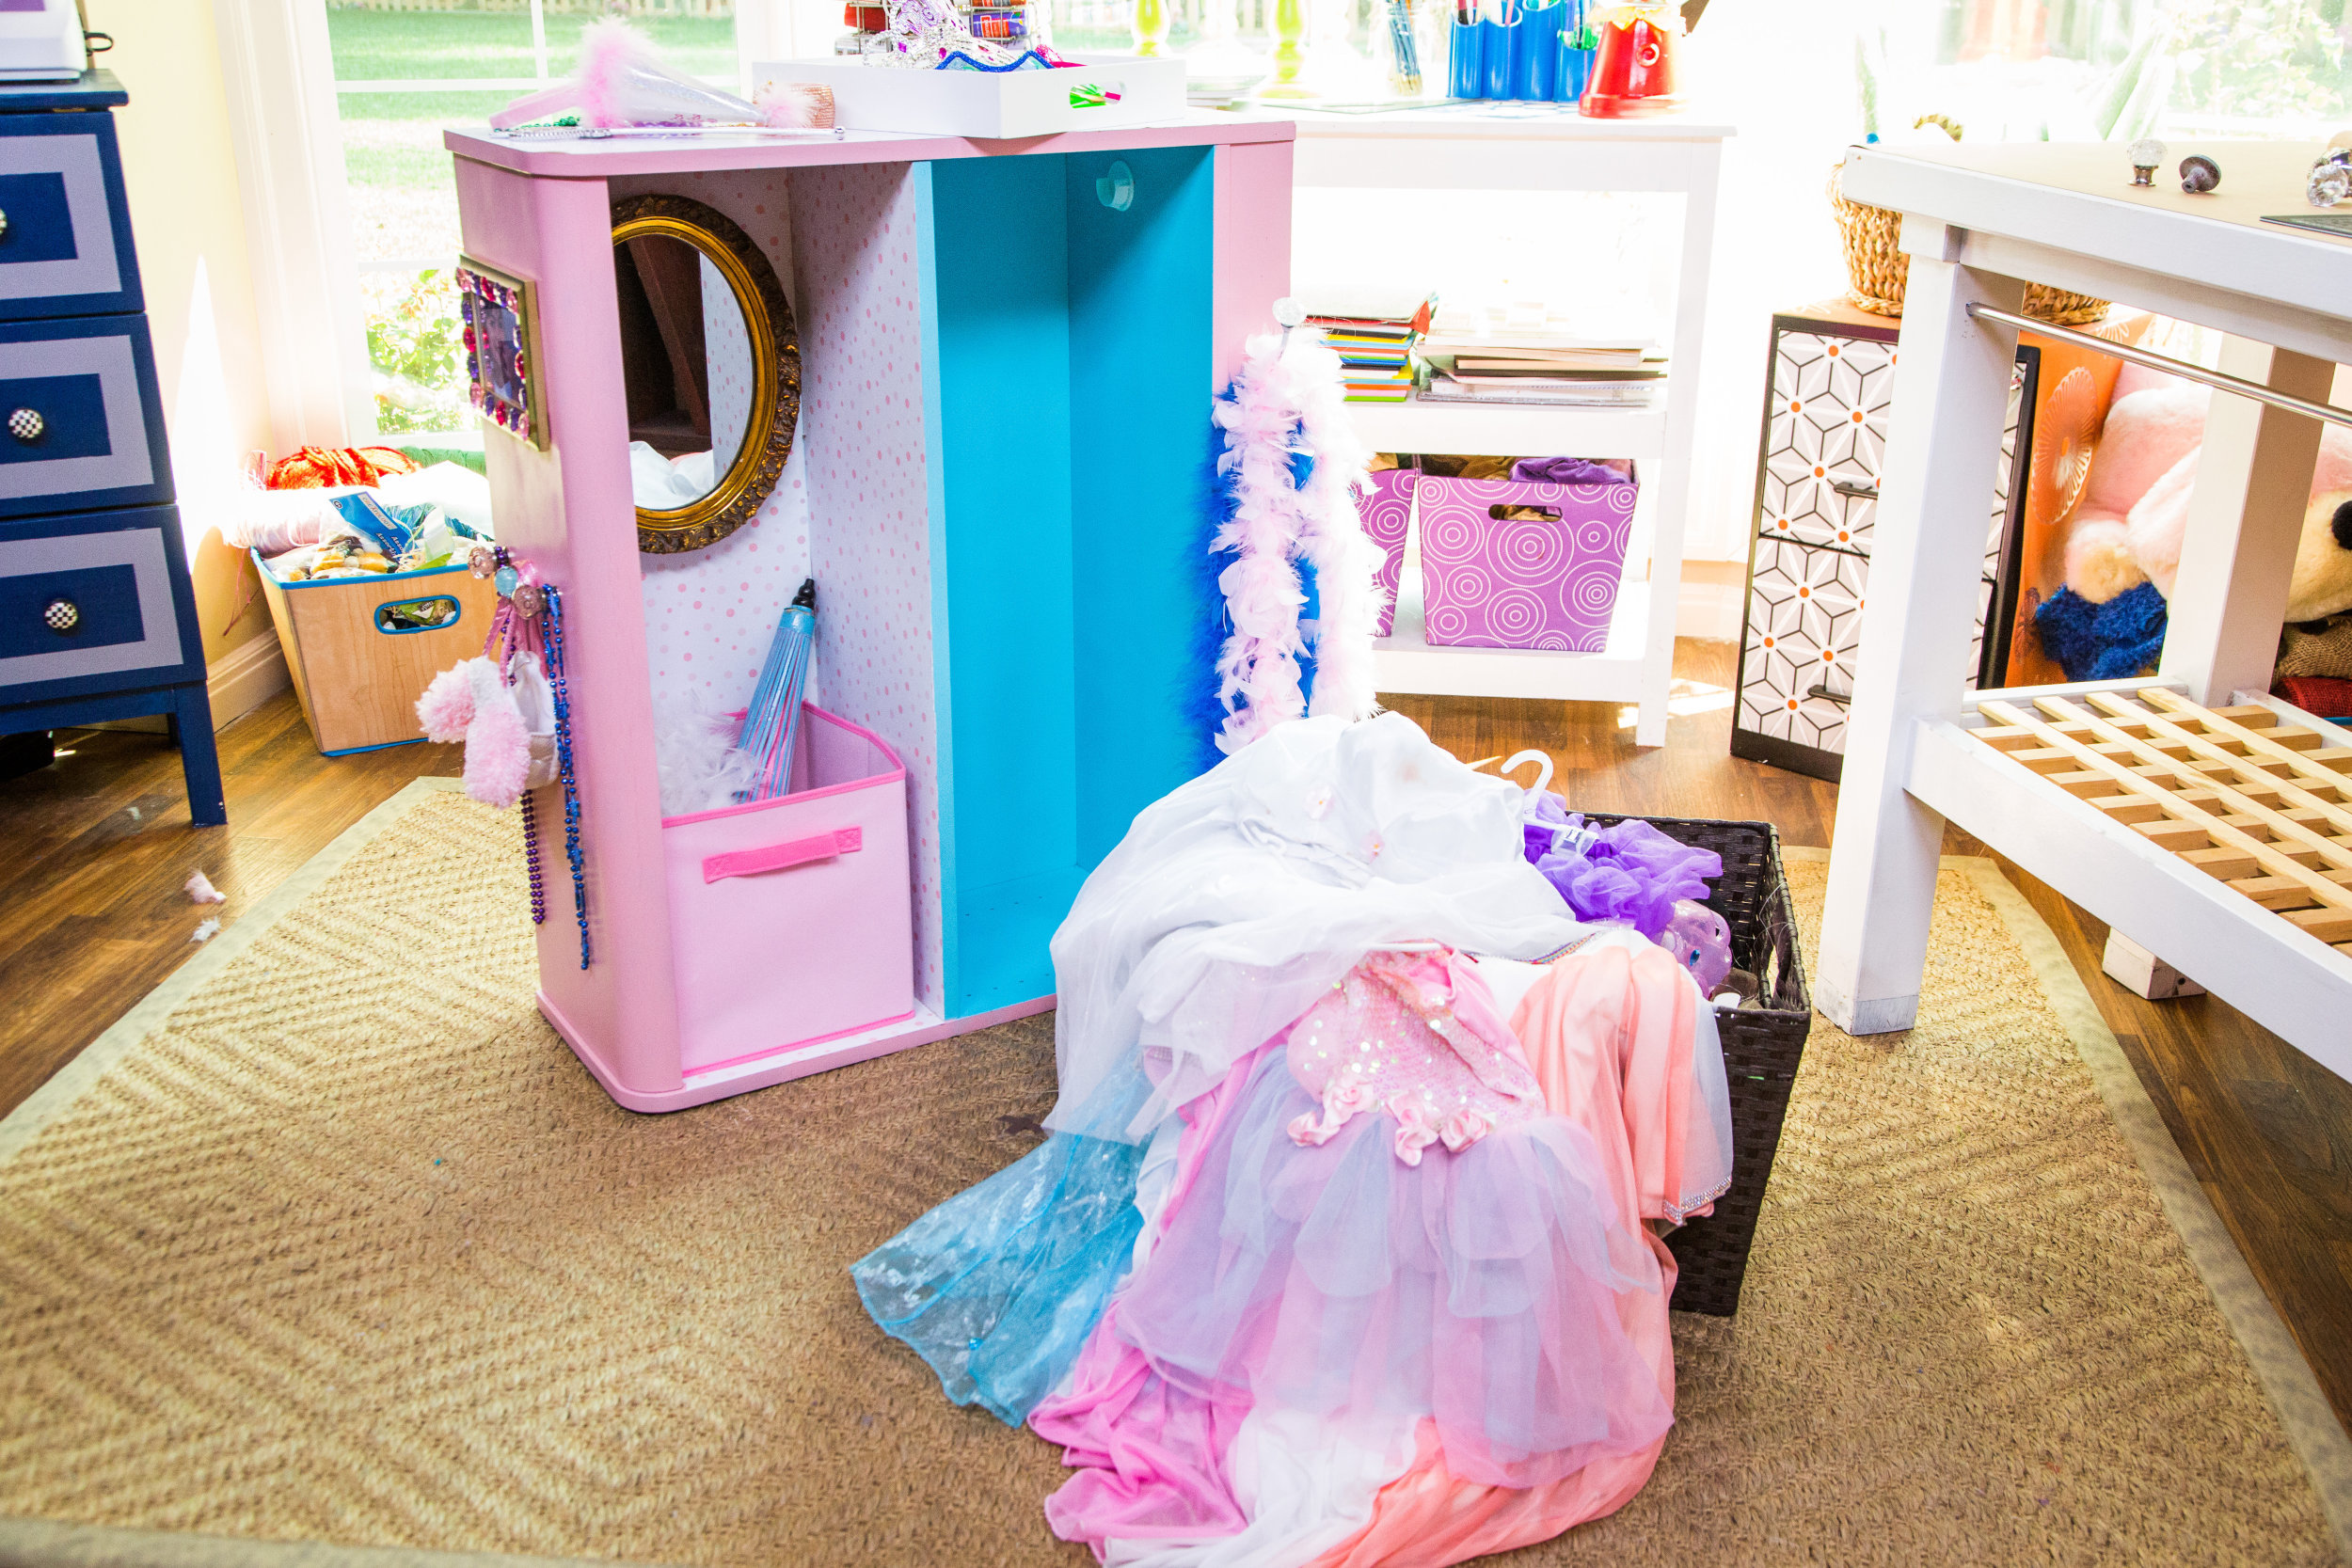 Diy Dress Up Storage Turning Your Booksheld Into A Dress Up Closet Home Family